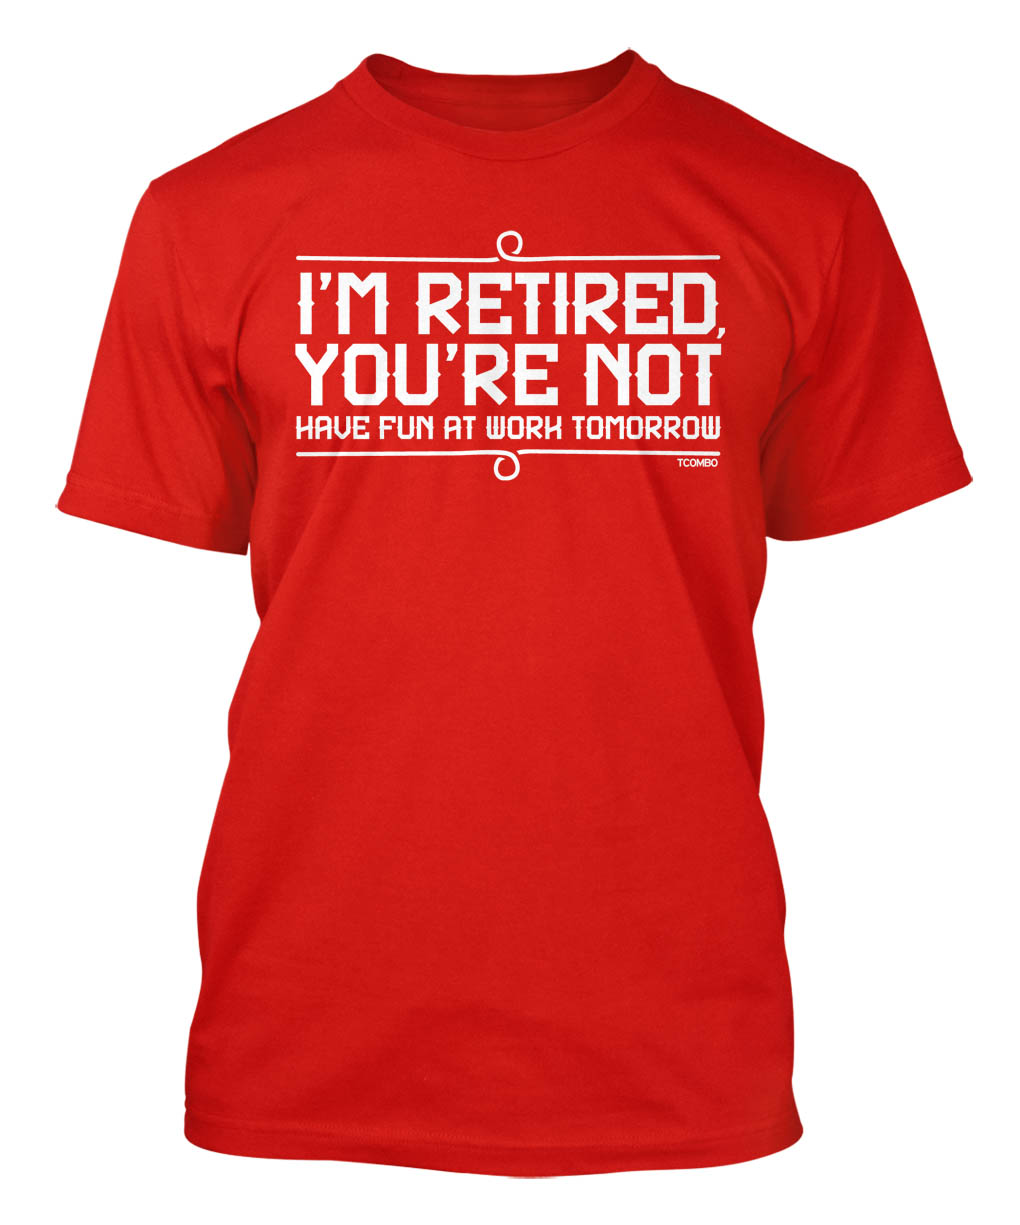 I'm retired and you are not